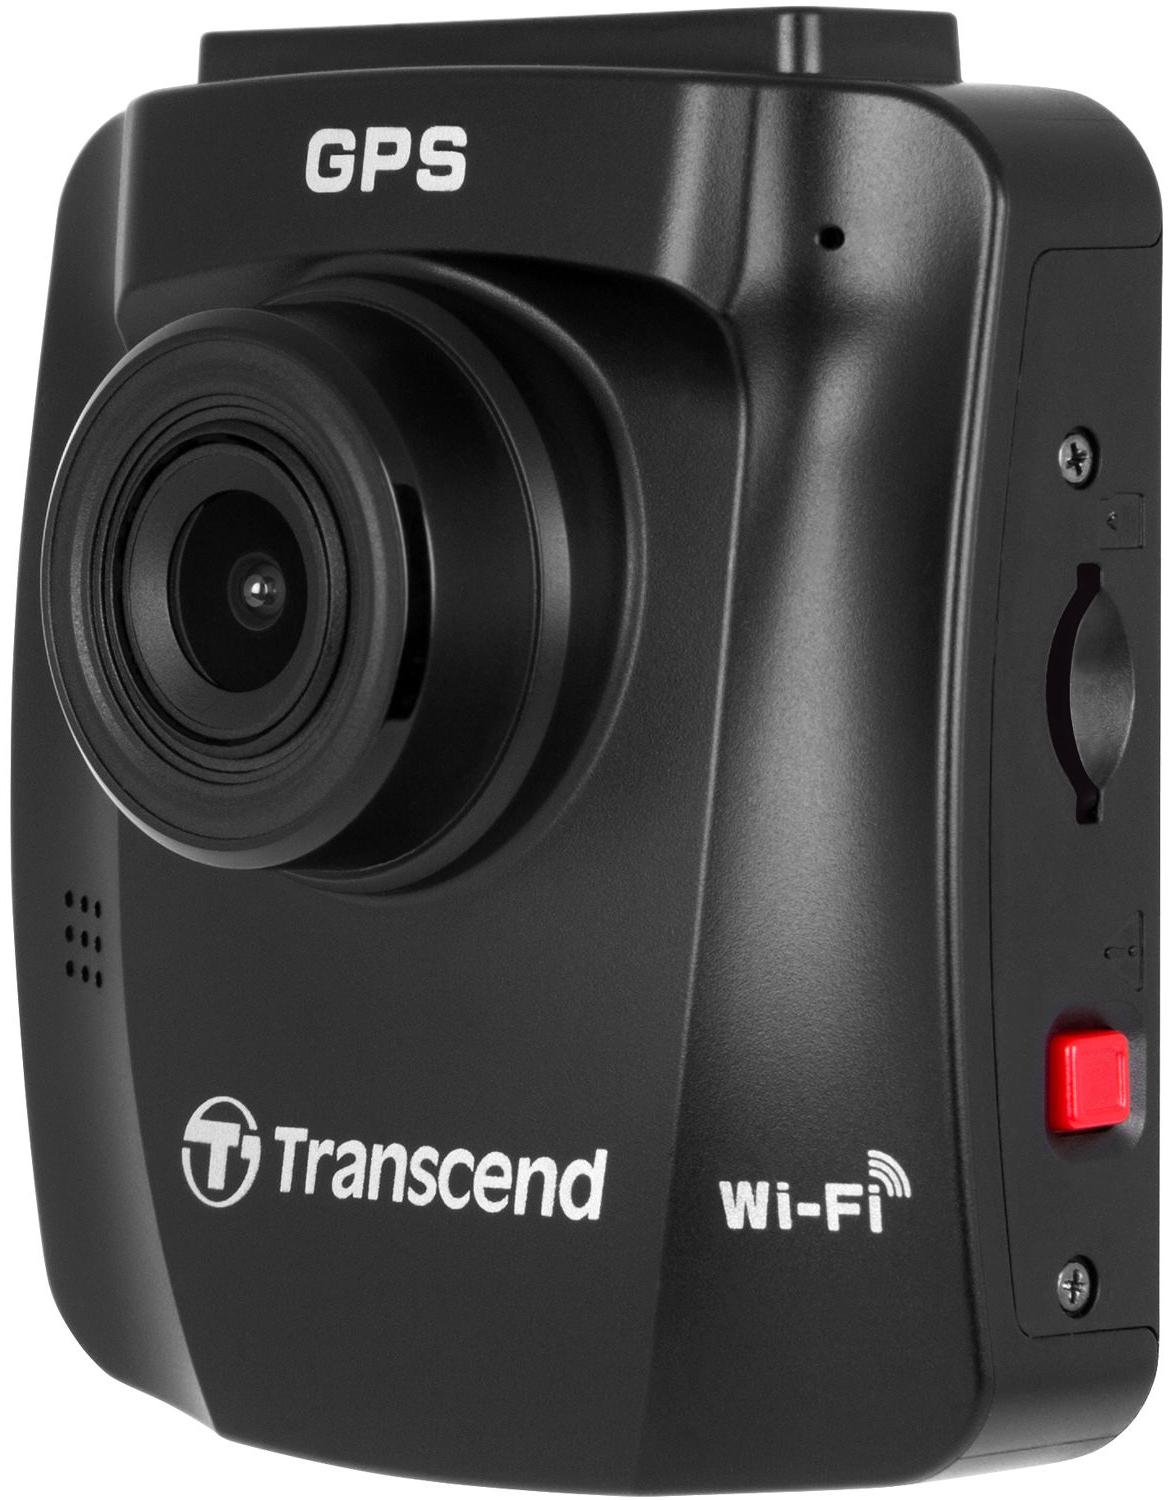 https://static.bhphotovideo.com/explora/sites/default/files/04transcend-drivepro-230-1080p-dash-camera-with-suction-mount.jpg